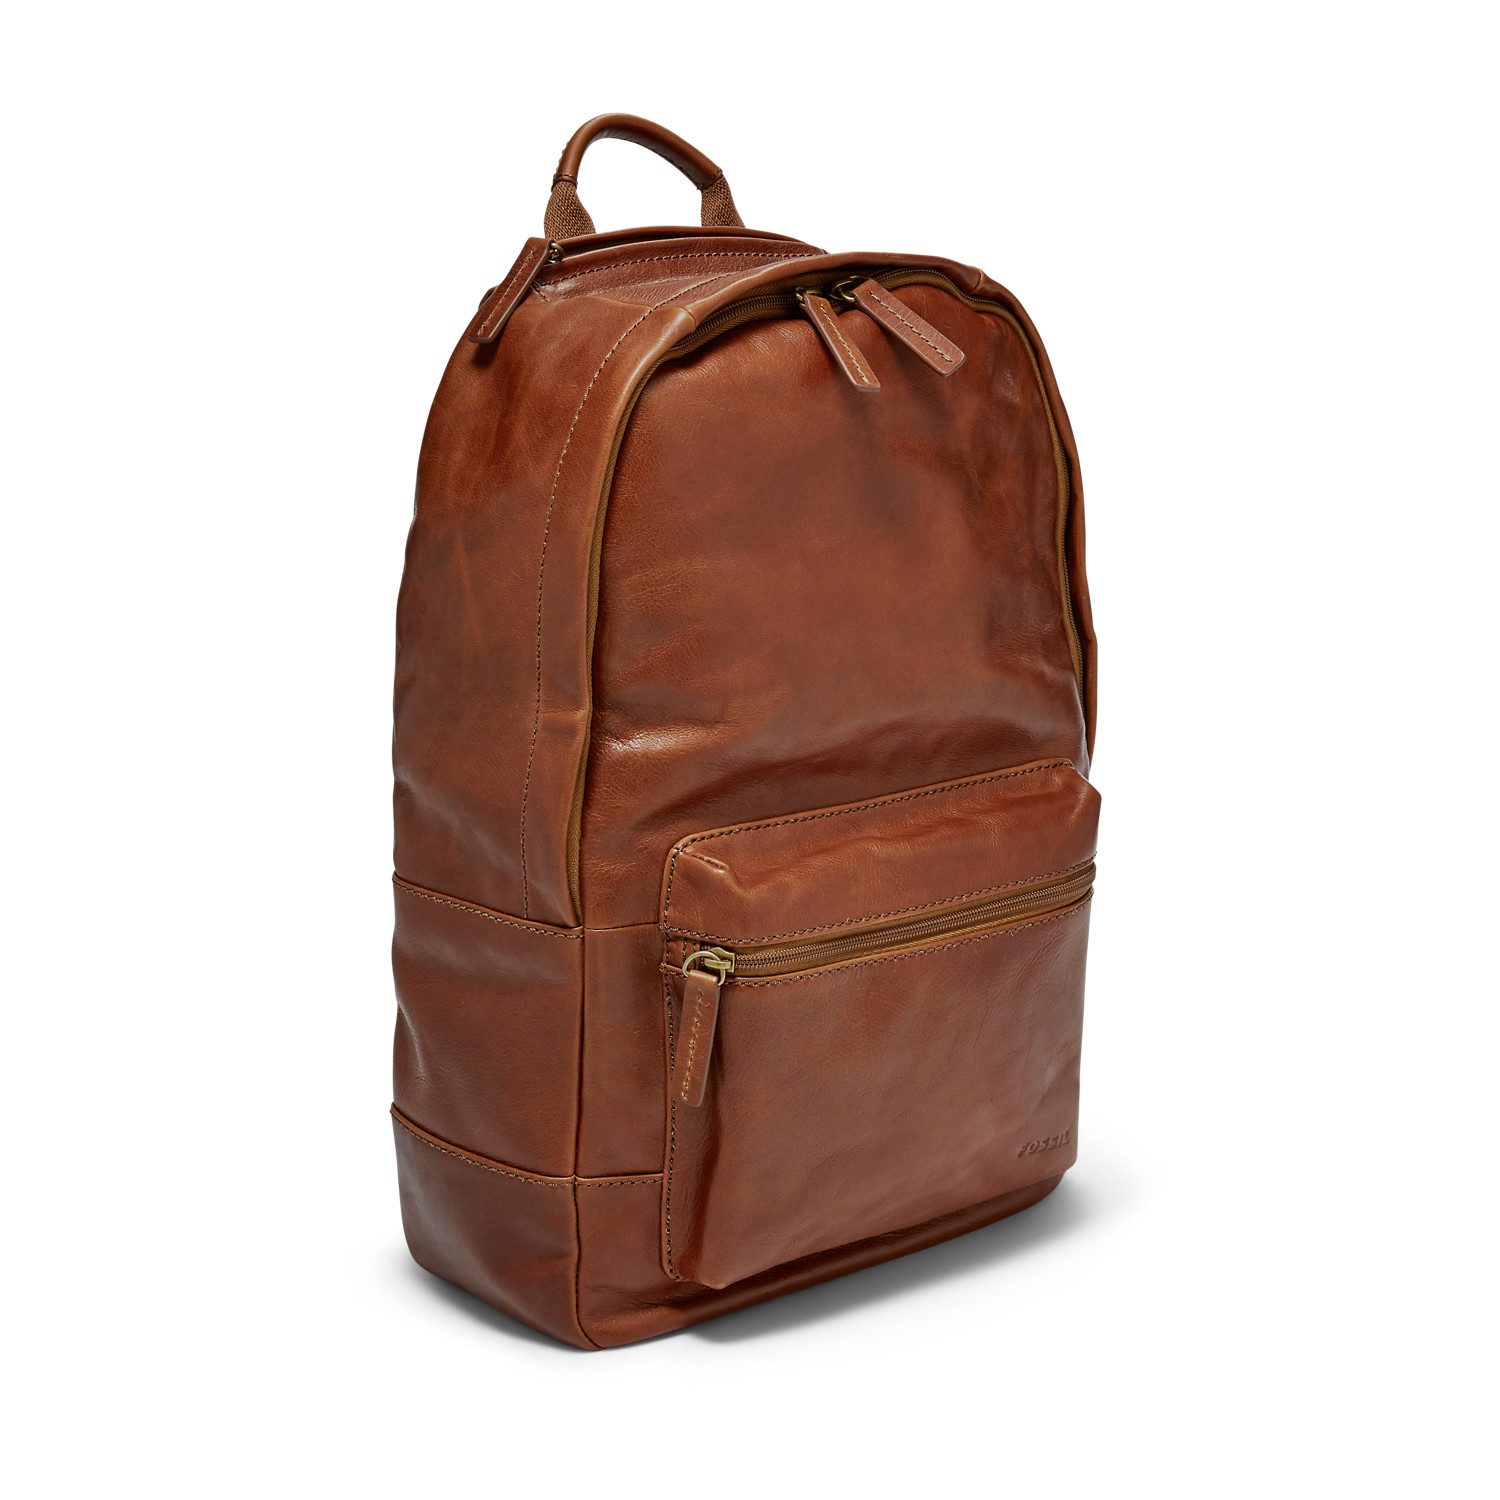 e503cb2e9e79c Estate Casual Leather Backpack - Fossil